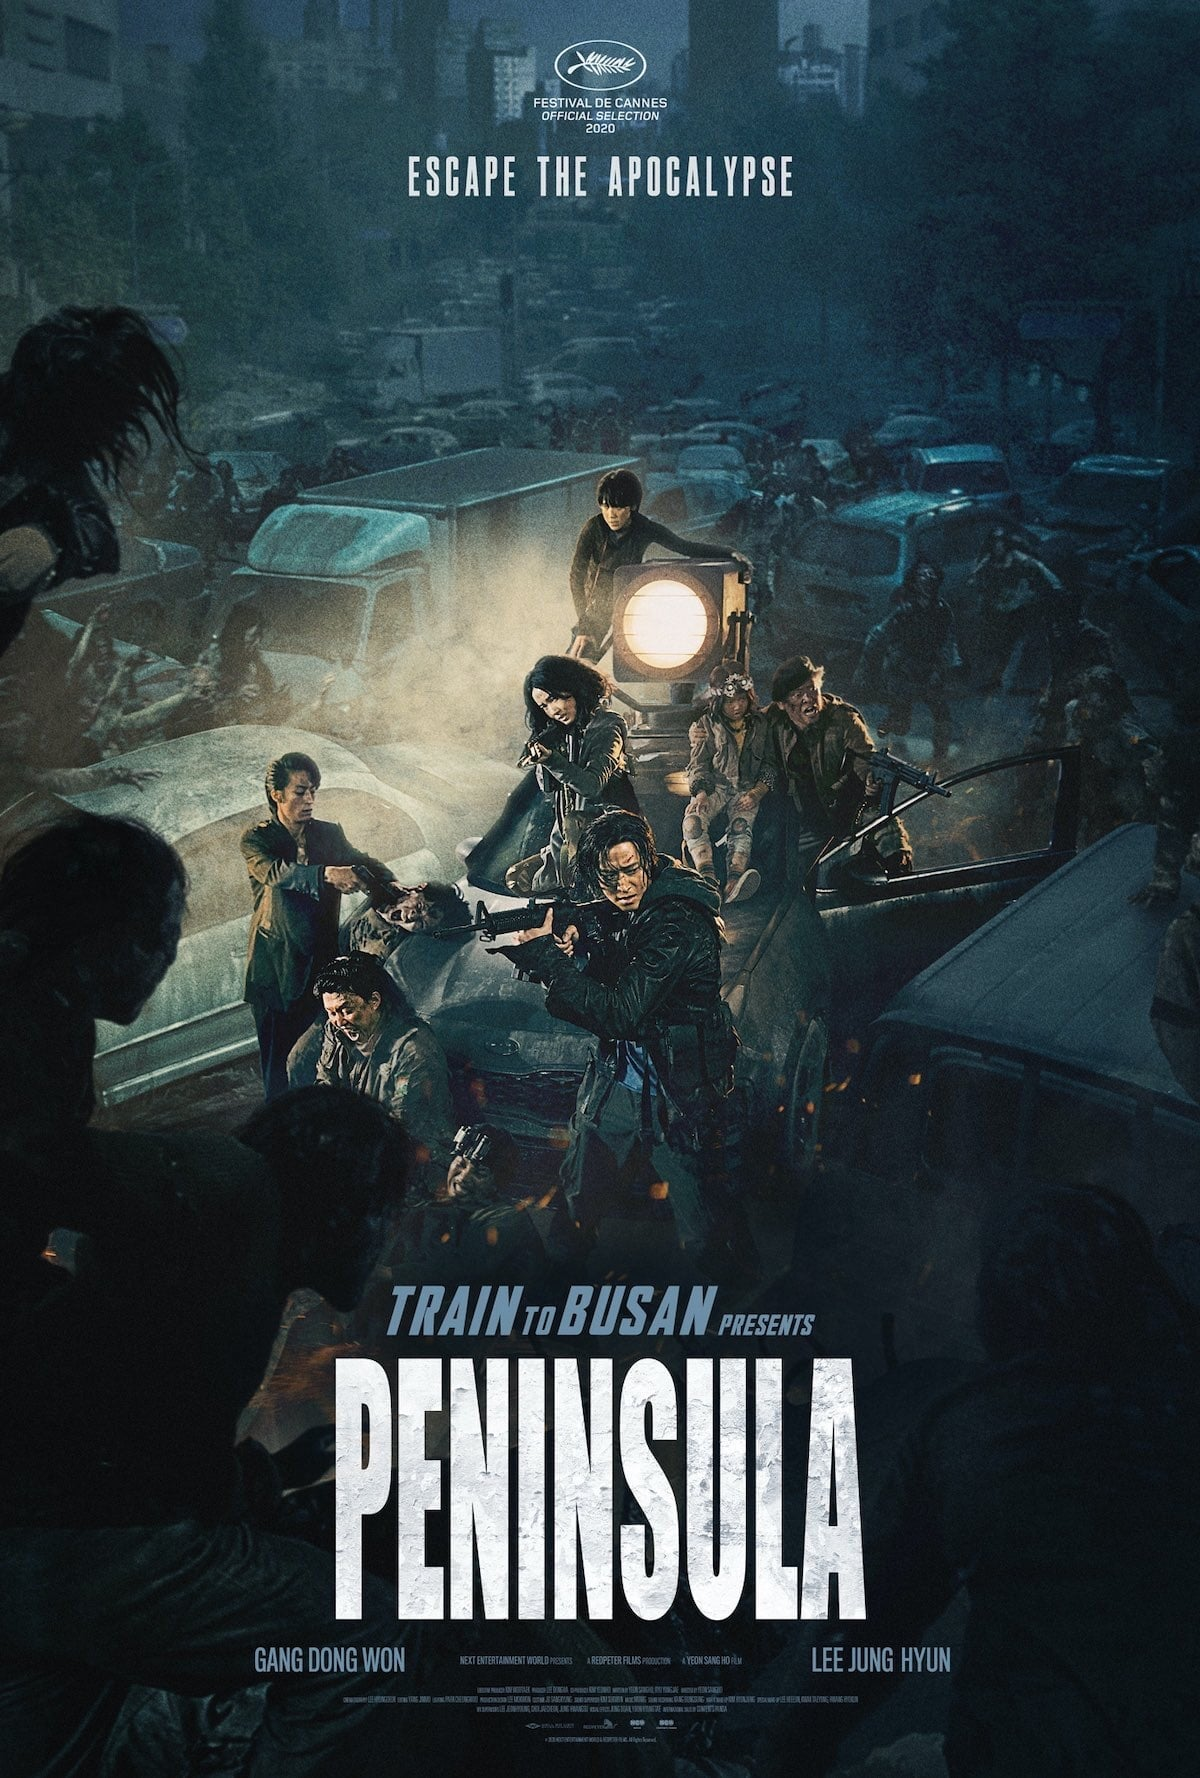 Train to Busan 2: Peninsula (2020)